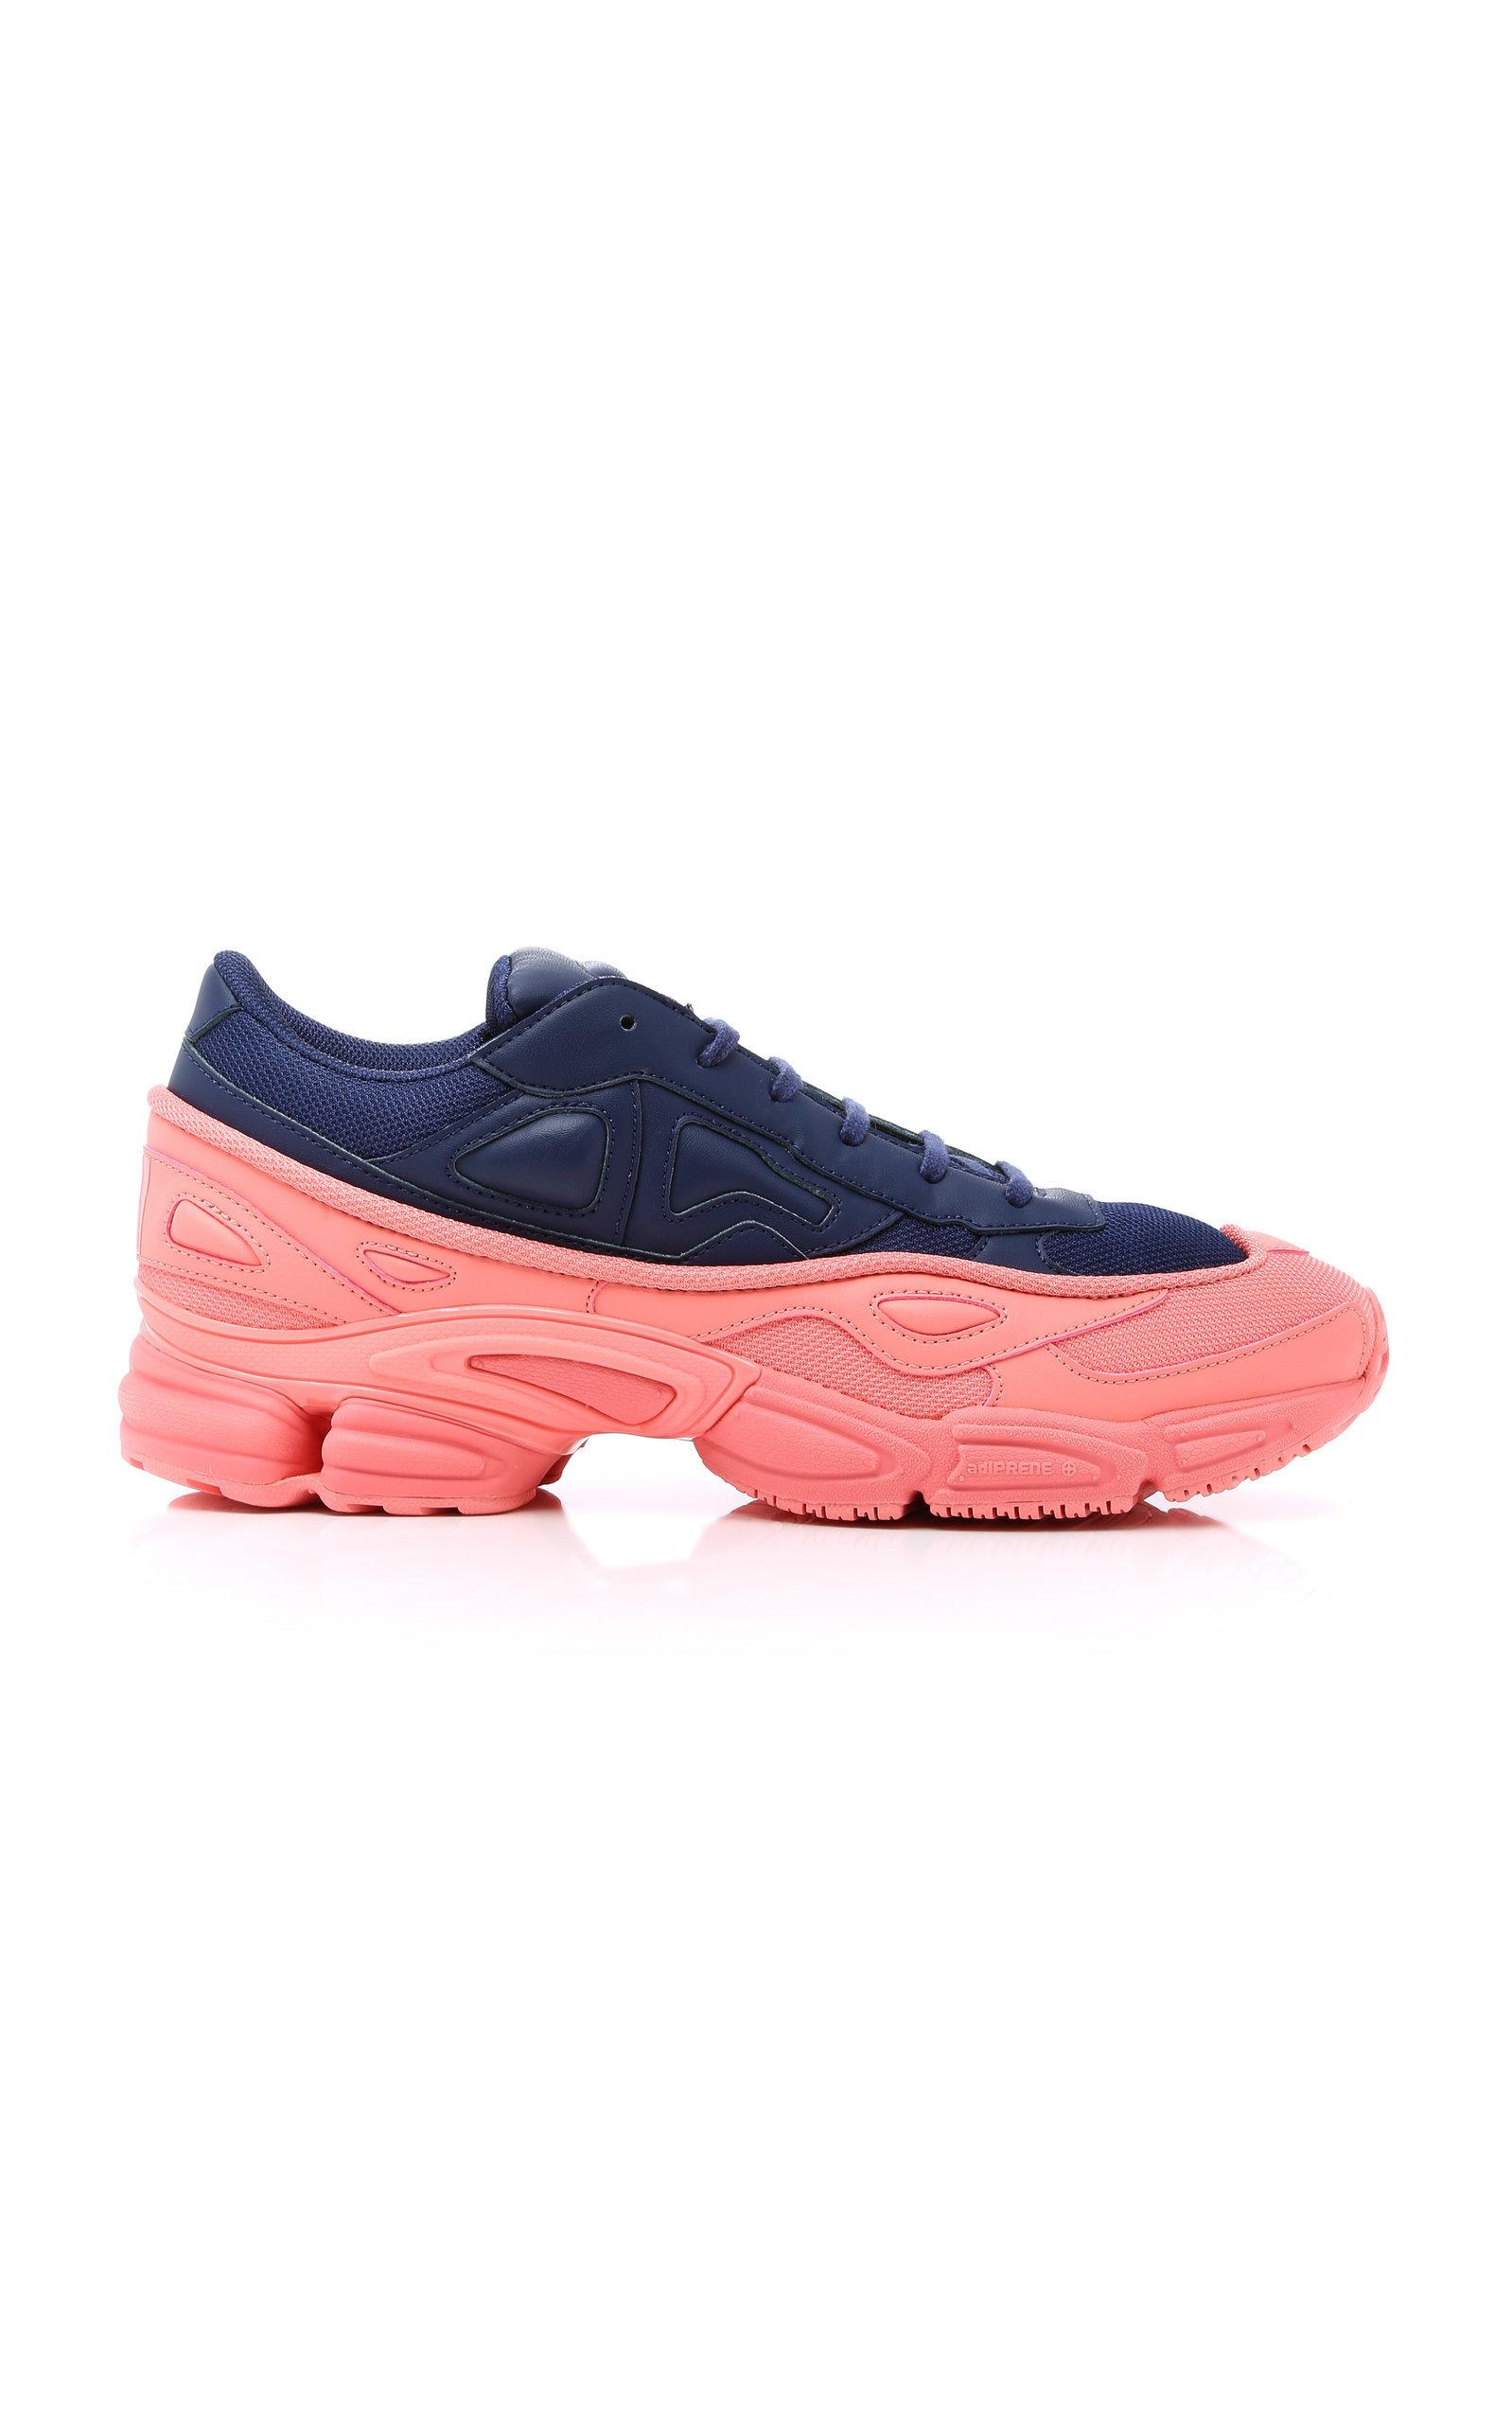 a3e3f18d7f8098 Adidas By Raf Simons Ozweego Blu Pink Leather Sneakers In Blue ...